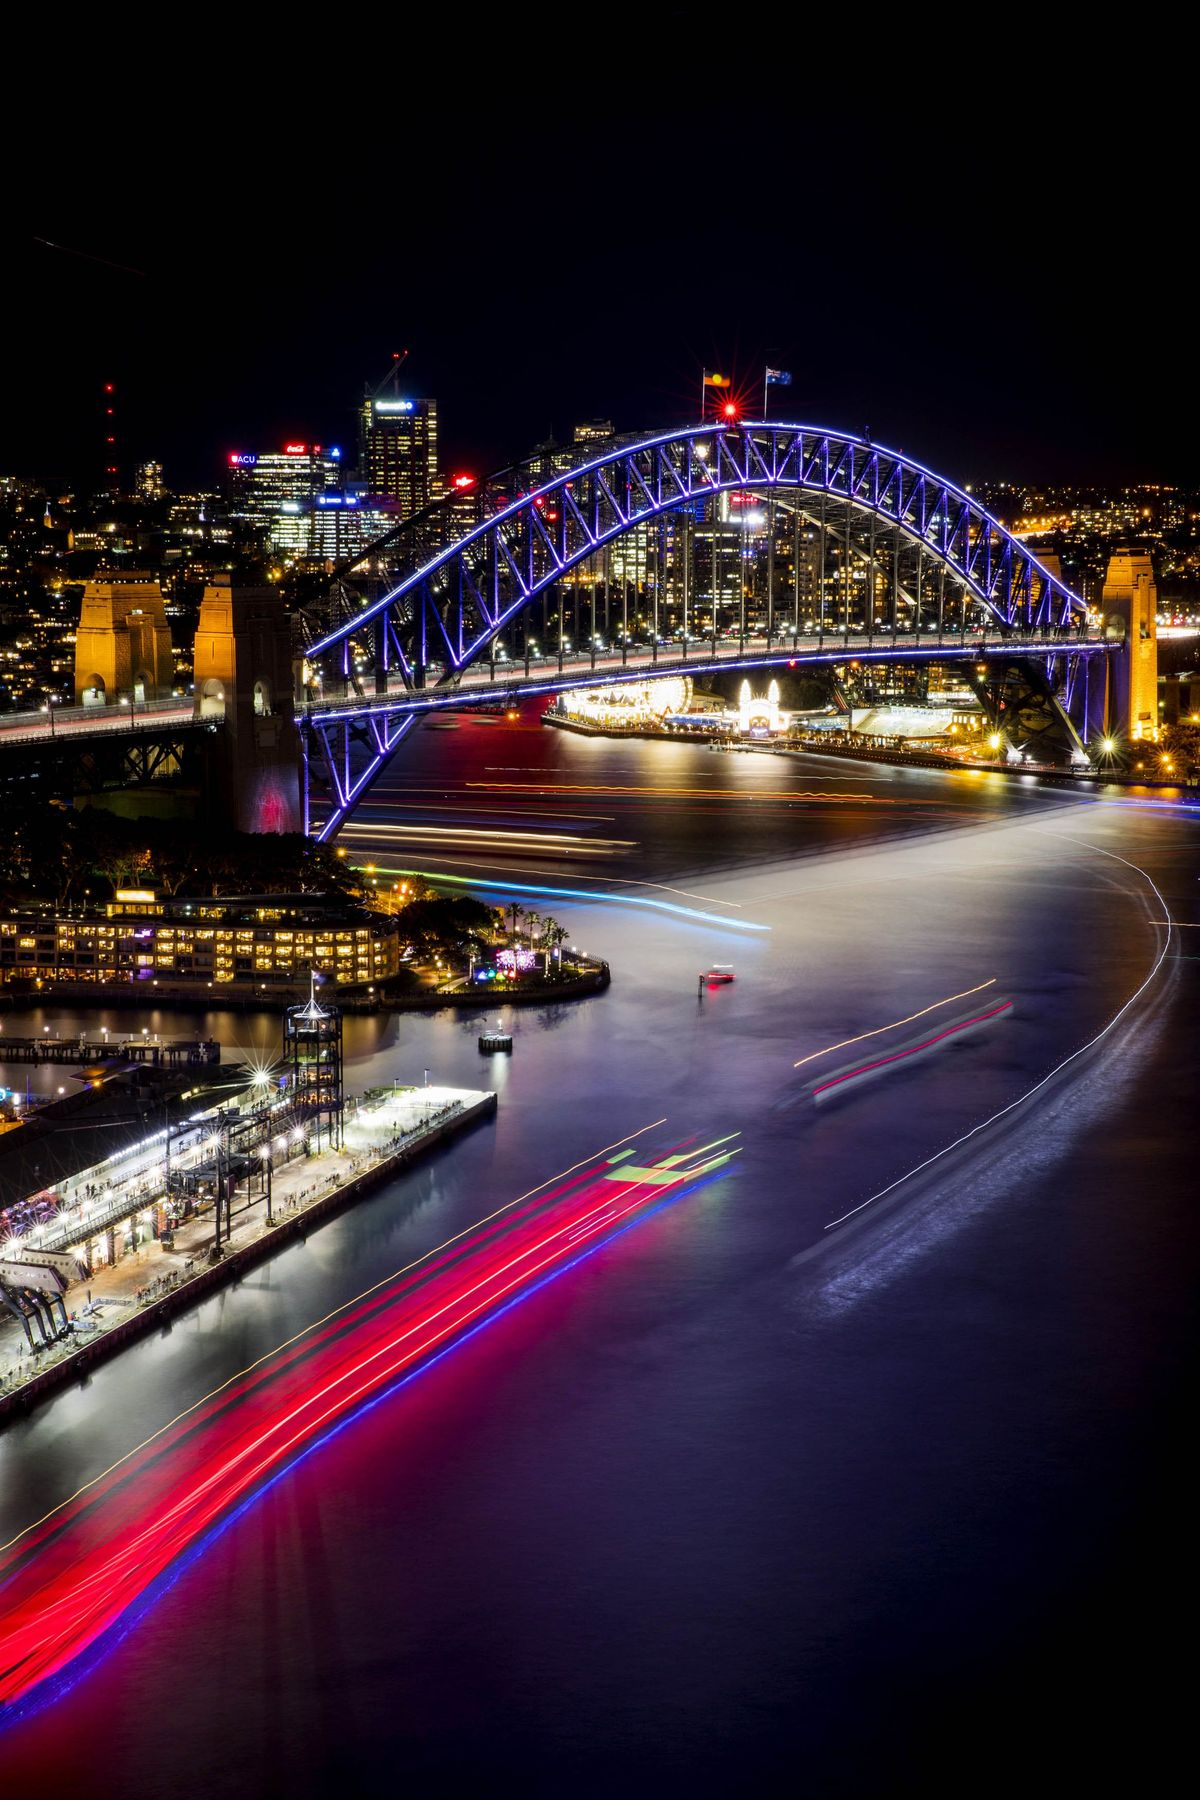 Harbour lights at the opening night of Vivid Sydney. Photo: James Horan/Destination NSW